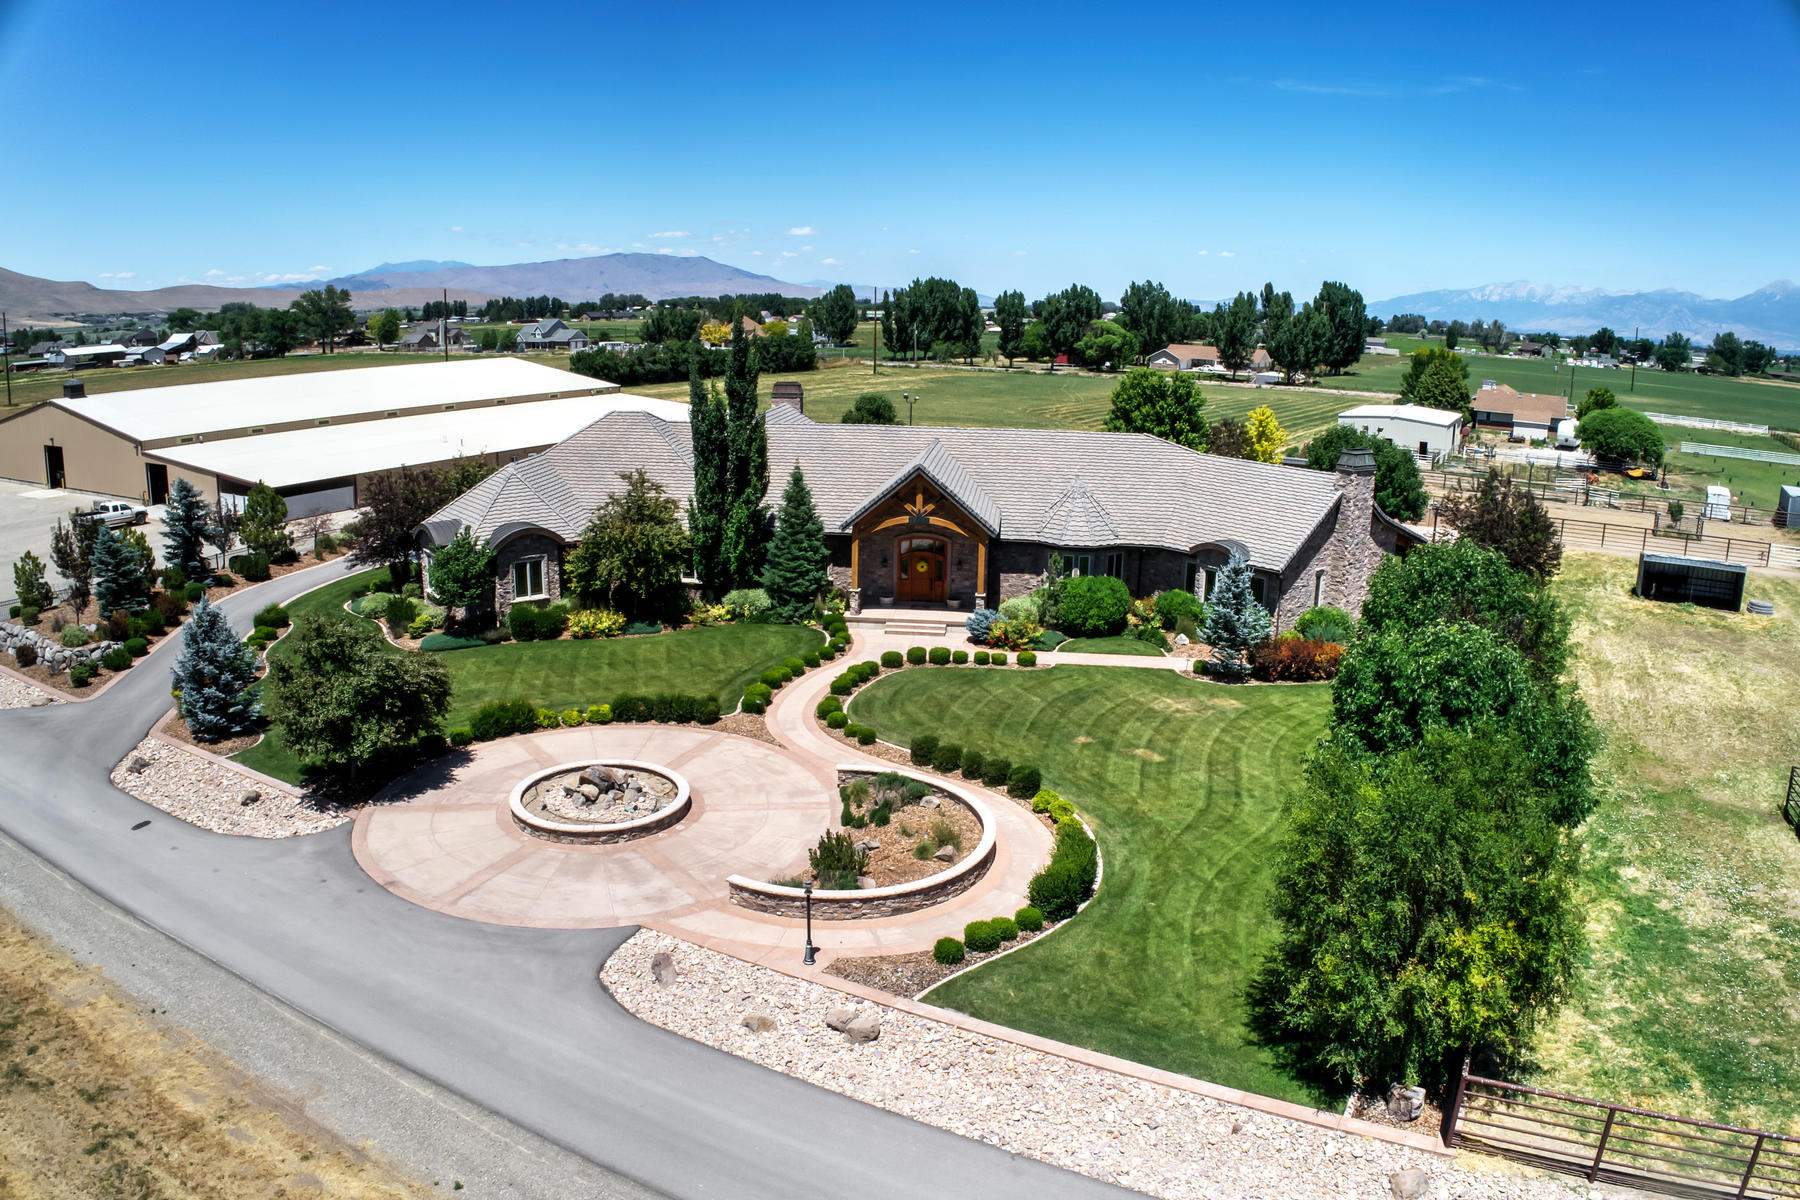 Single Family Homes for Sale at Gorgeous Single Level Home and Horse Property 7702 South 3300 West, Benjamin, Utah 84660 United States